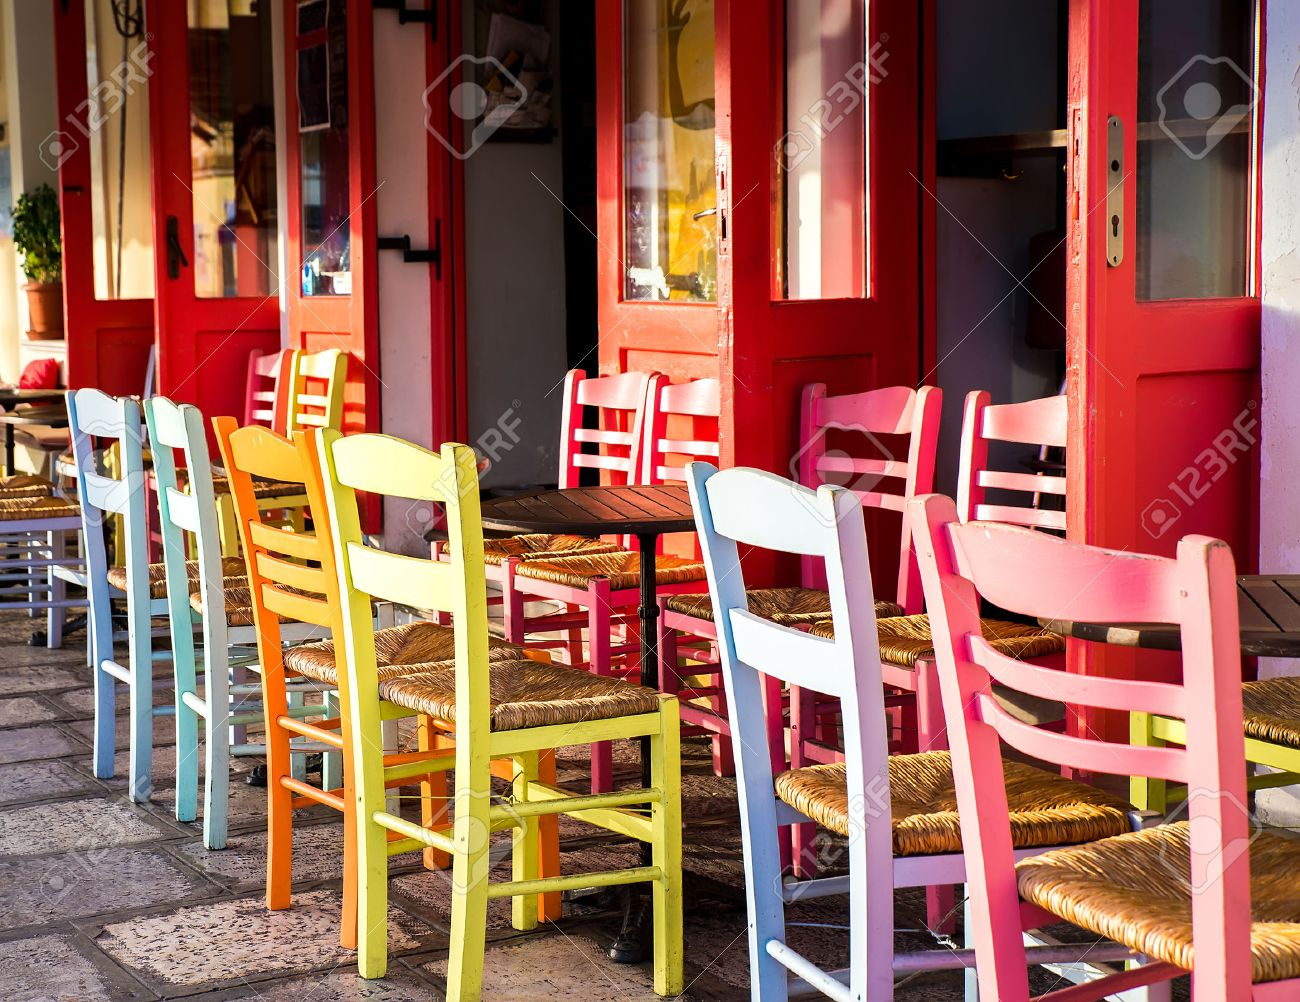 Merveilleux Greek Island Restaurants With Colorful Tables And Chairs. Stock Photo    35681759